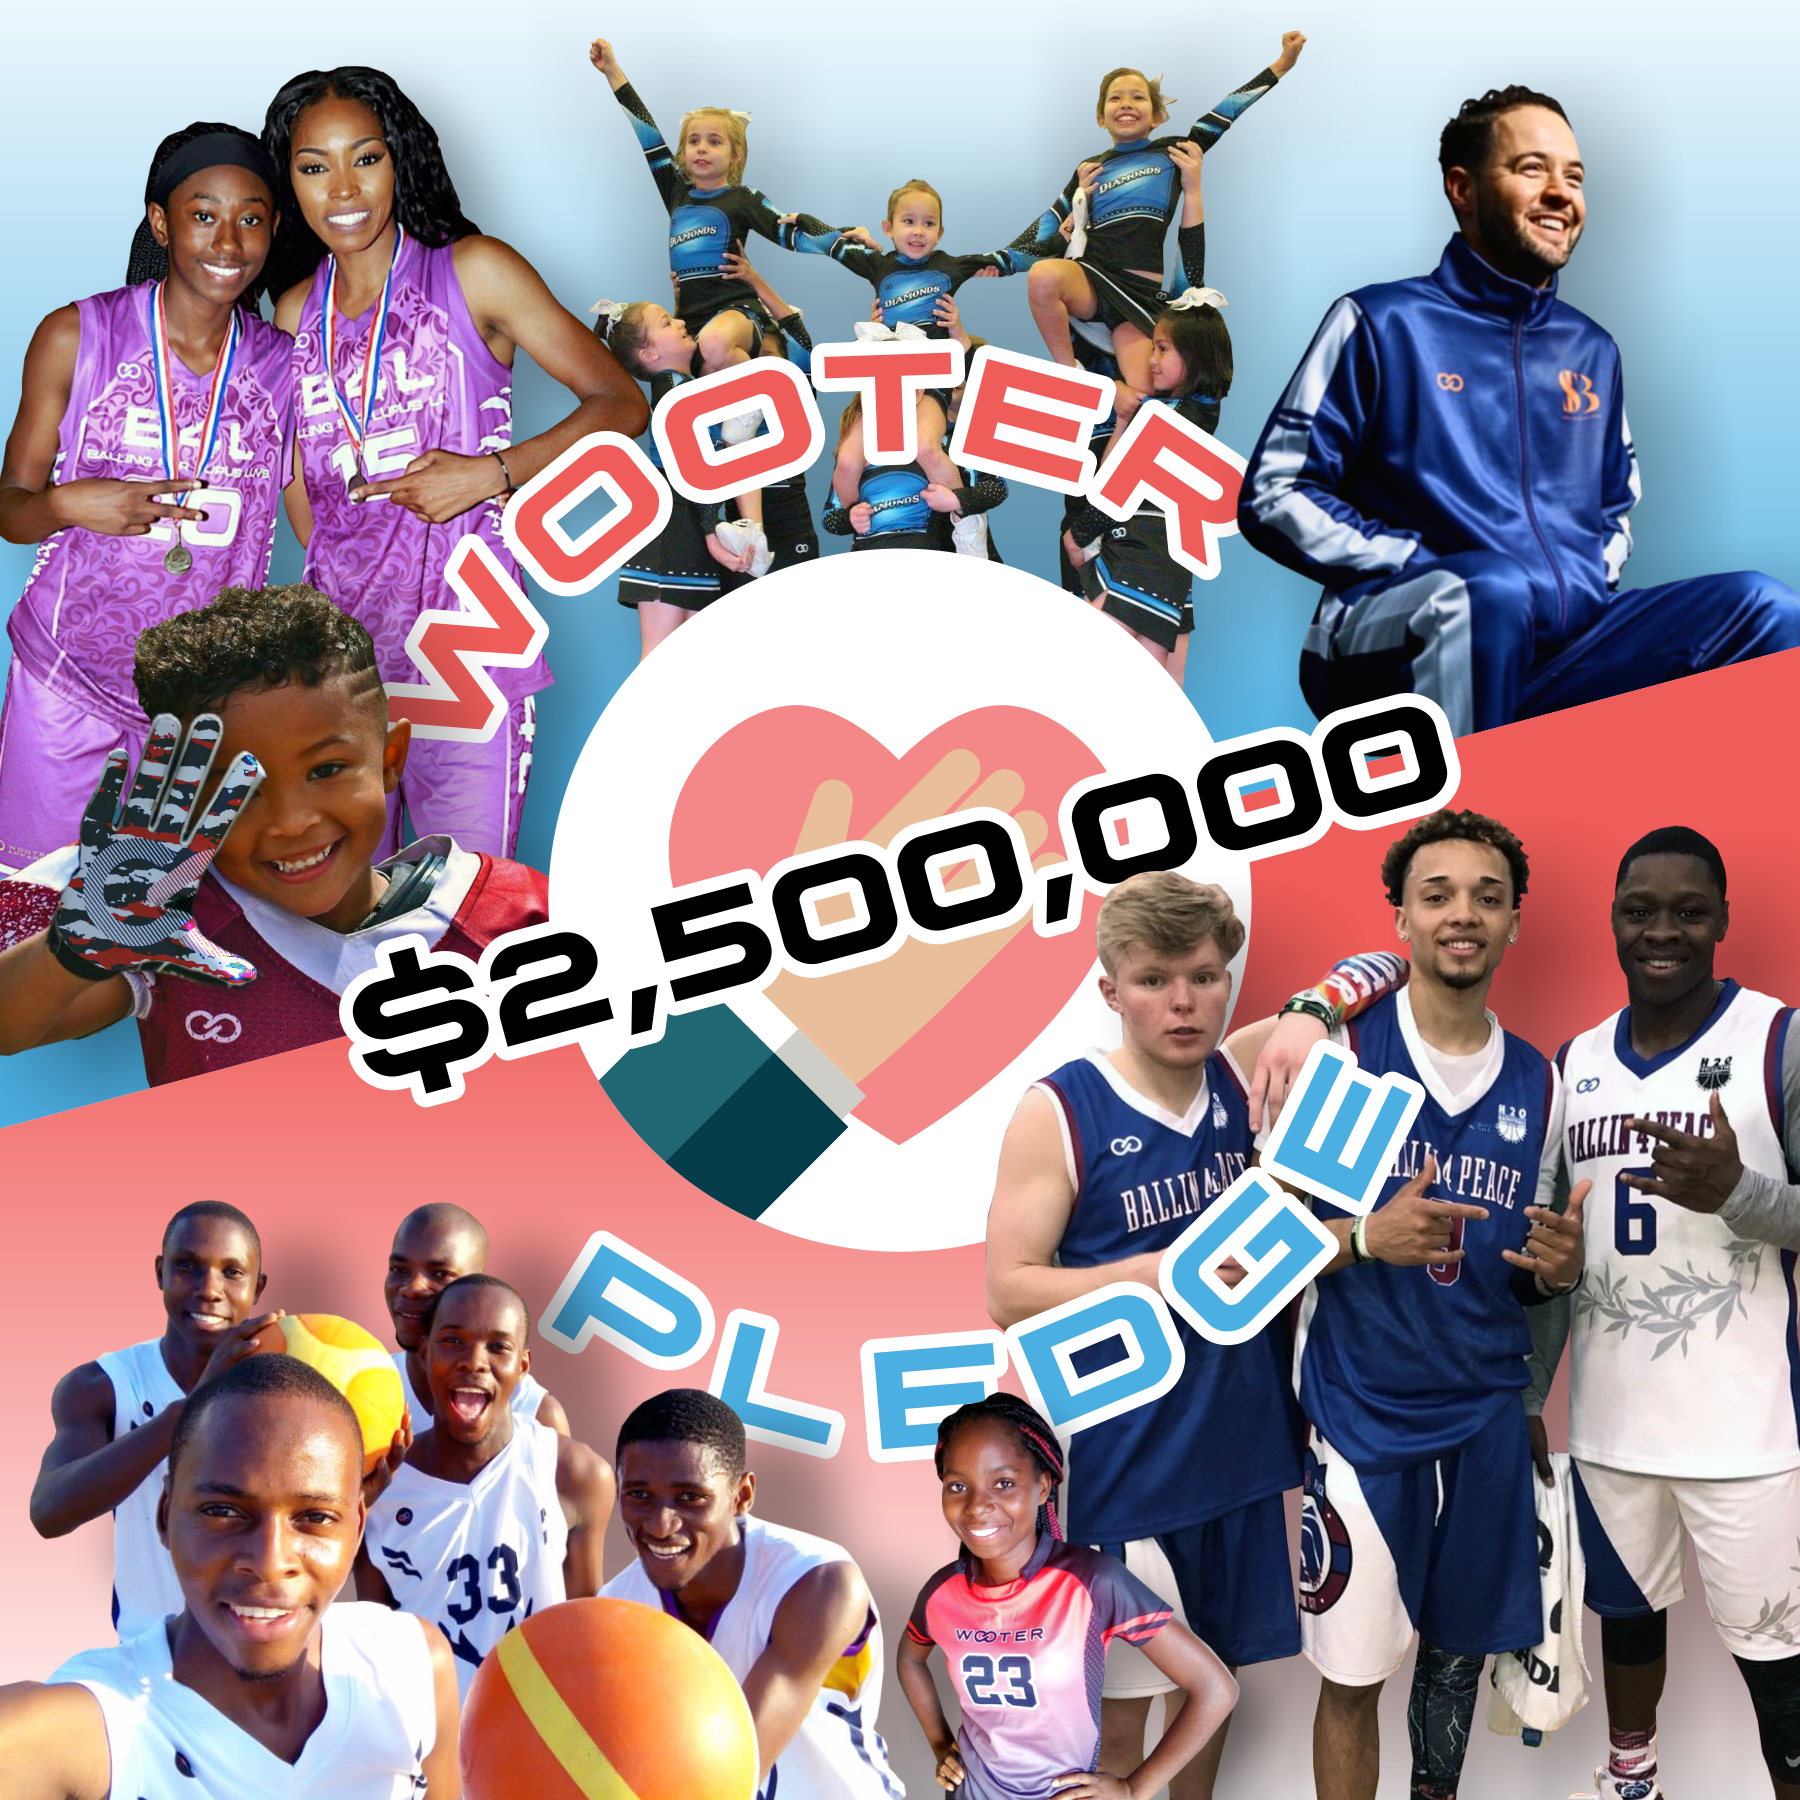 The Big Give Back: Wooter just announced they will be pledging $2.5M to establish new programs, help support underfunded organizations and create new opportunities for our kids to develop the skills they need to be successful.